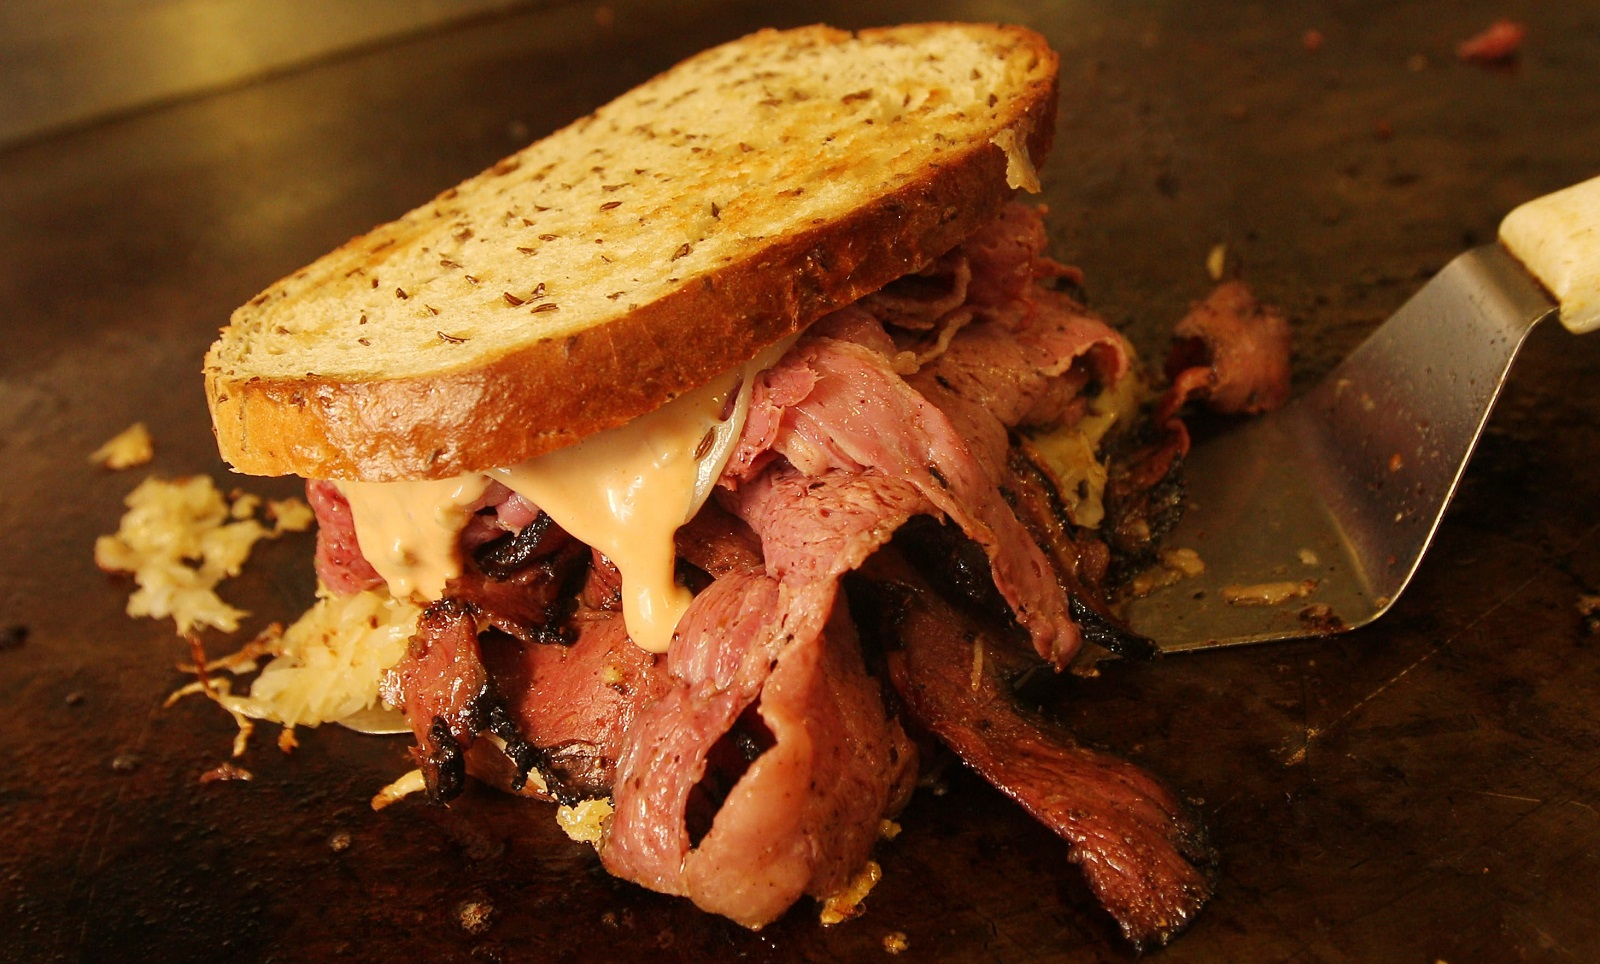 A pastrami corned beef Reuben from Brawlers Back Alley Deli is one treat close by the KeyBank Center. (Sharon Cantillon/Buffalo News file photo)